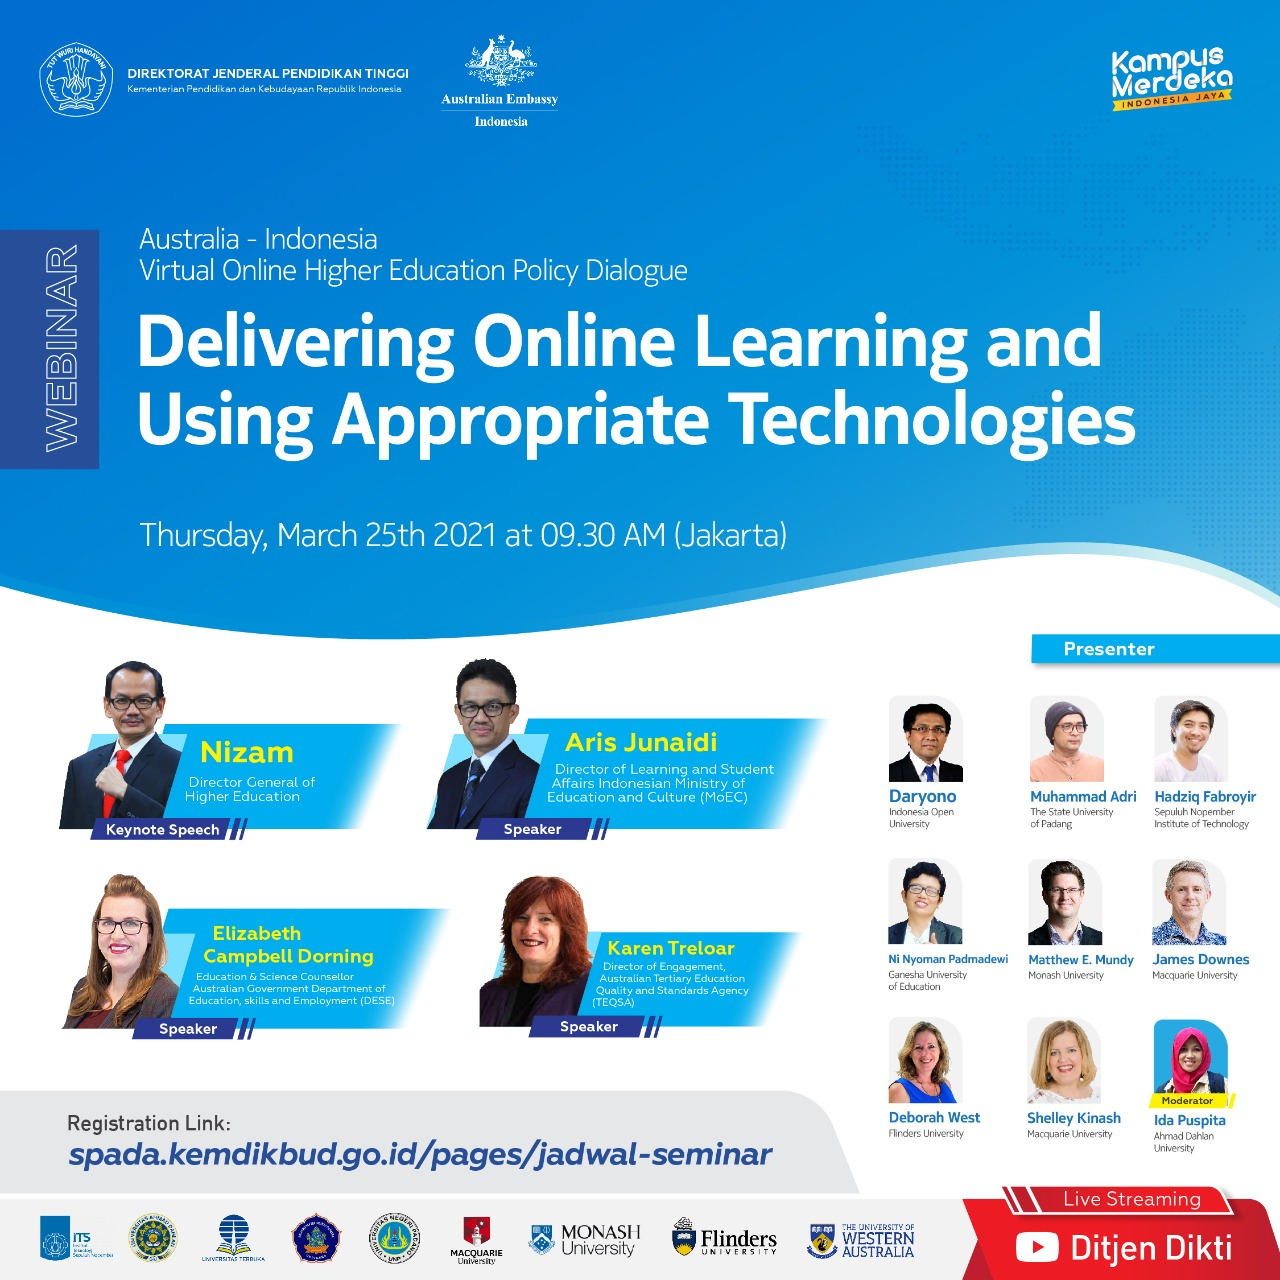 """Directorate General of Higher Education Ministry of Education, and Culture Republic of Indonesia Cooperating with The Department of Education, Skills and Employment (DESE), the Australian Embassy Jakarta Conduct Online Webinar on """"Delivering Online Learning"""""""